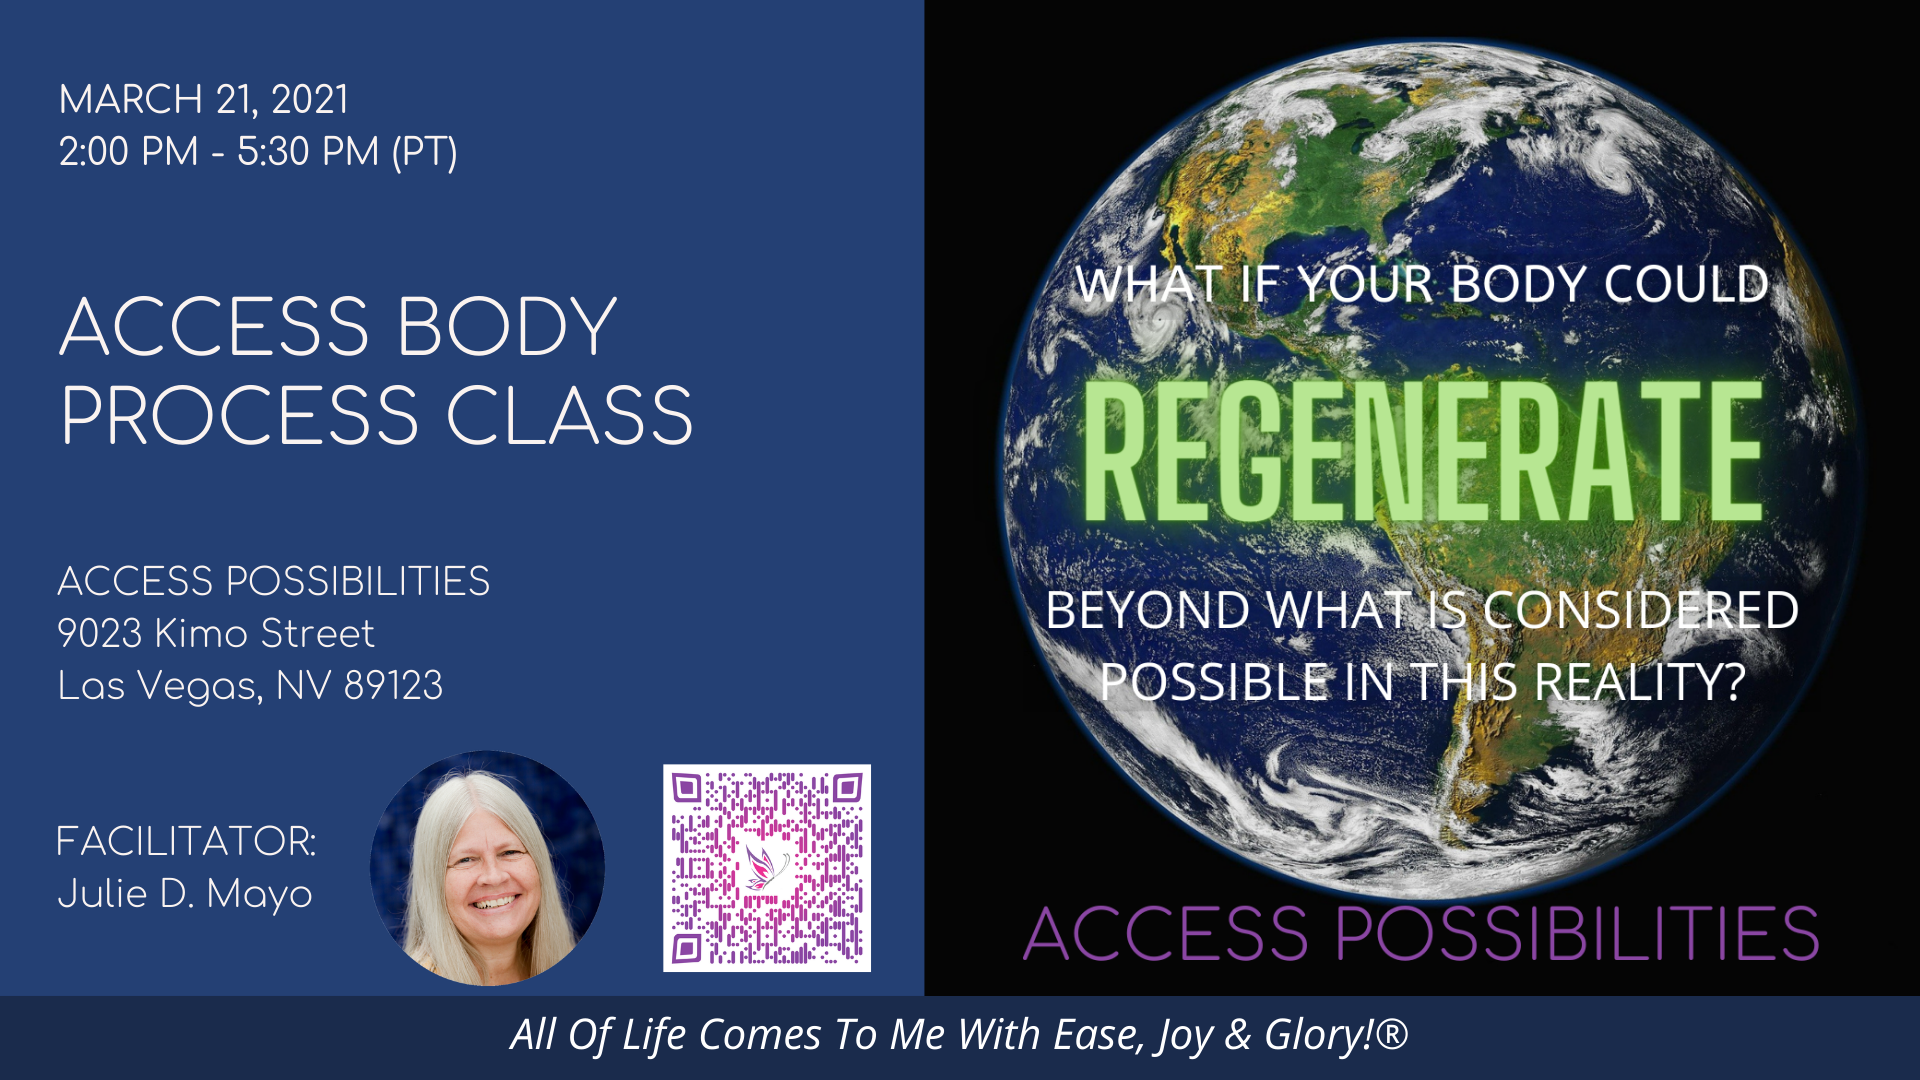 Access Body Process Class with Julie D. Mayo | May 16 PM | Access Possibilities